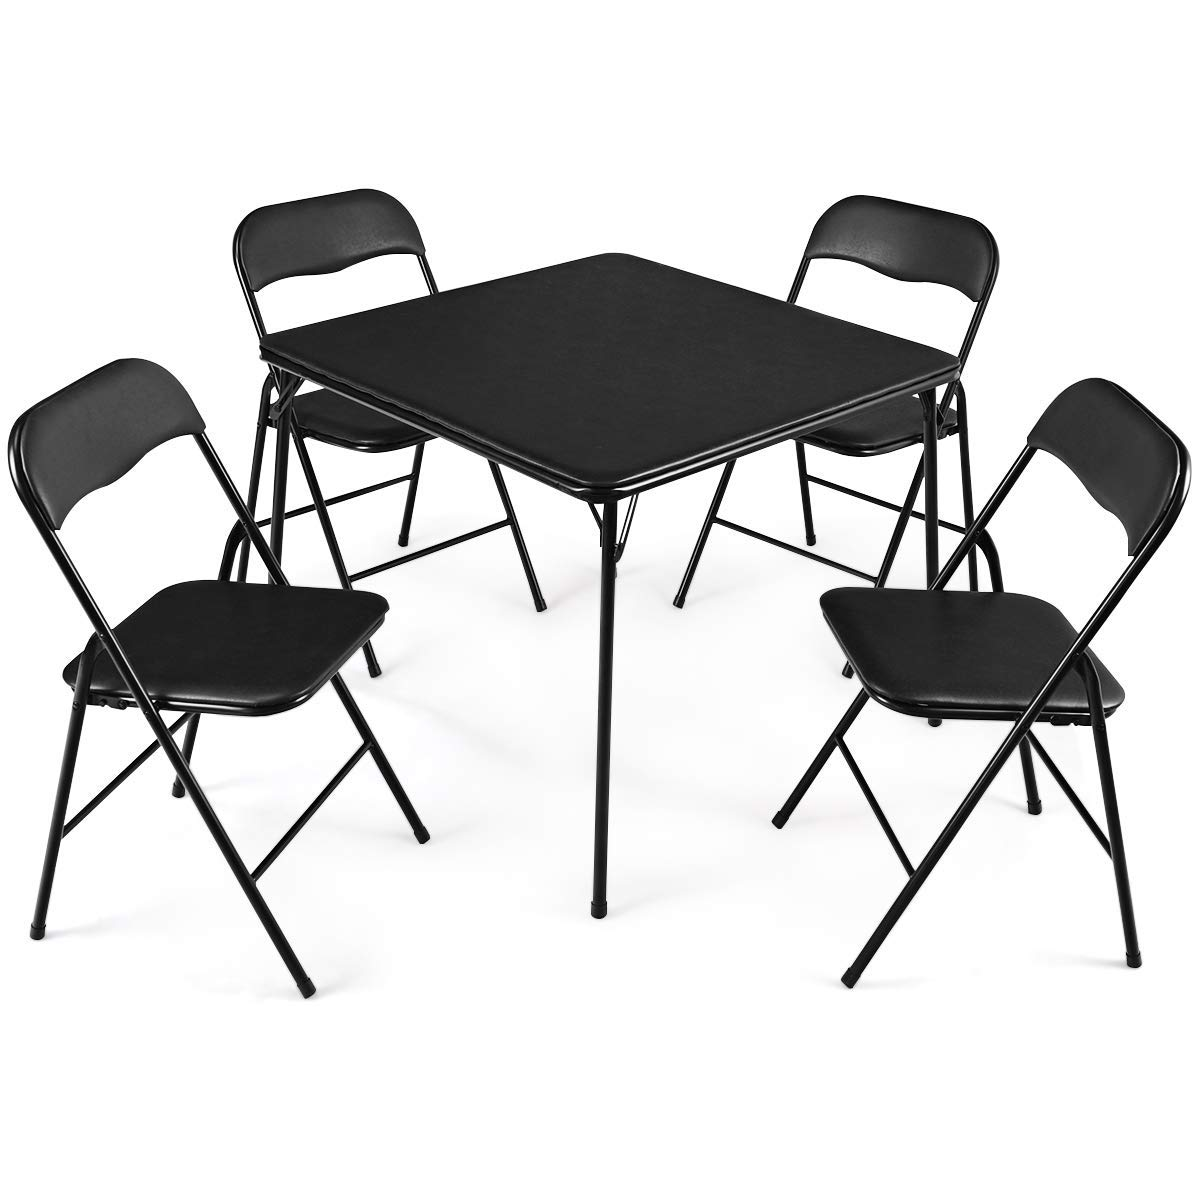 Get Quotations Giantex 5 Piece Folding Table And Chairs Set Multi Purpose Kitchen Dining